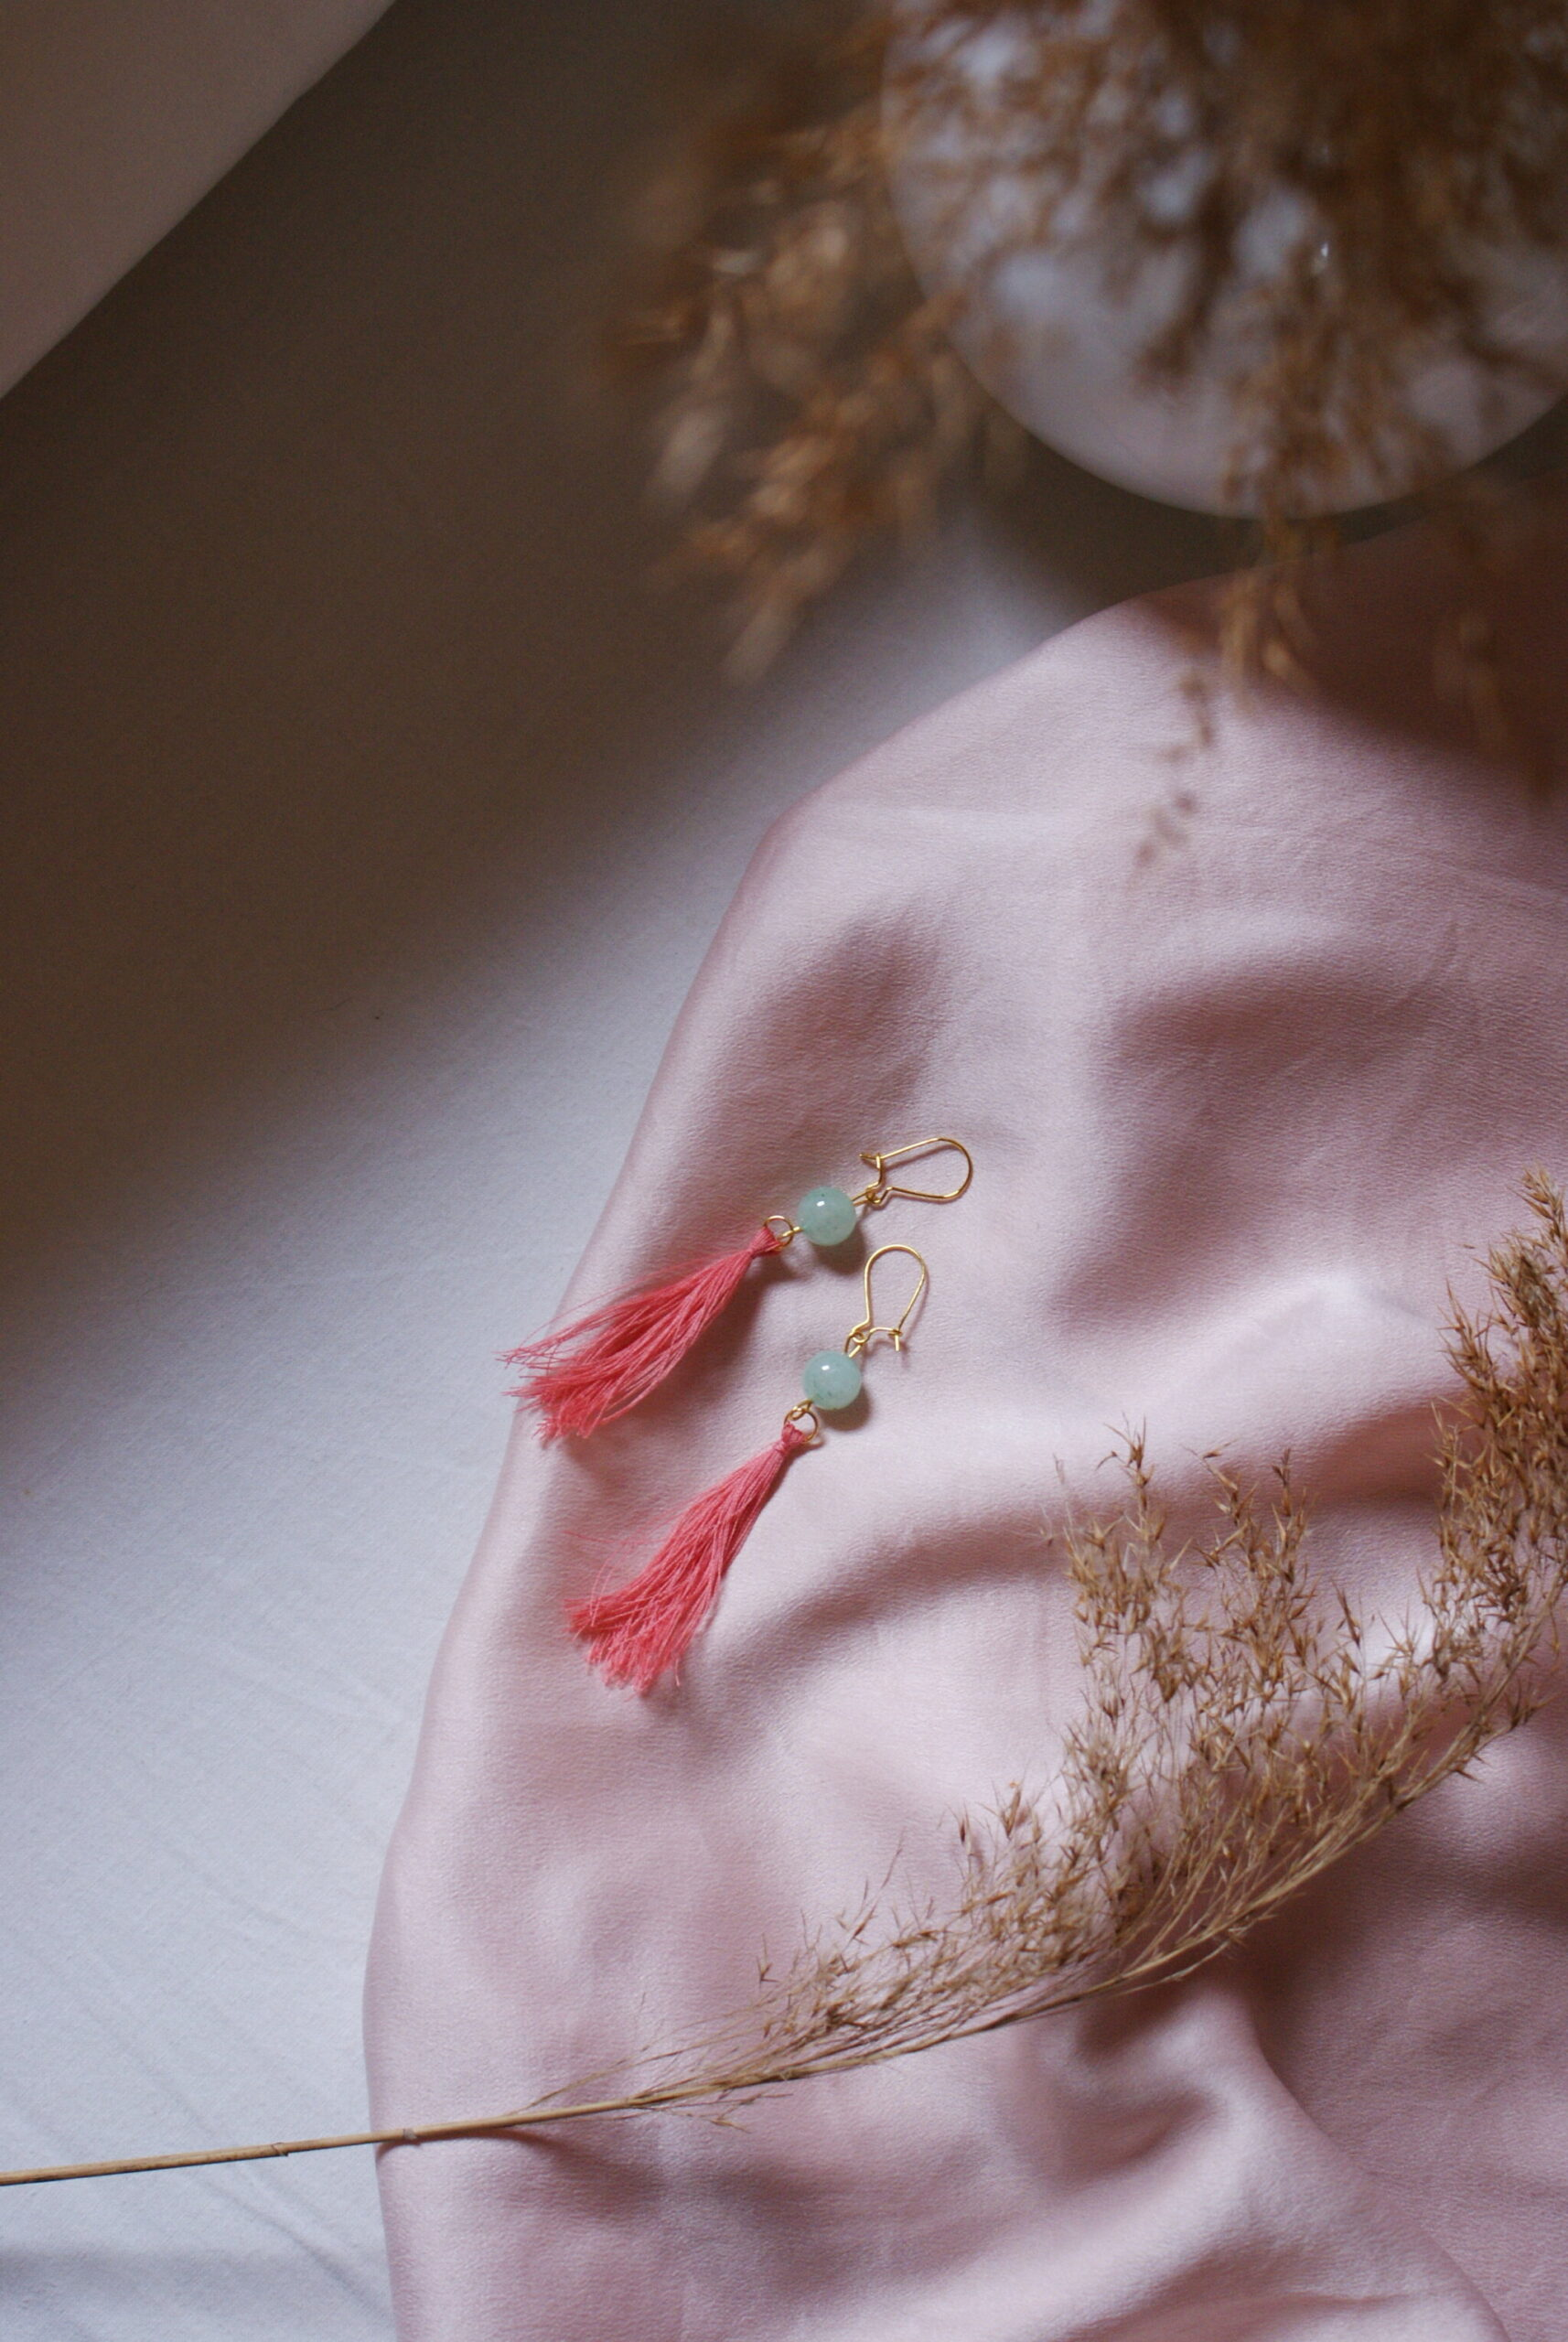 DIY SILK TASSEL + BEADS EARRINGS: EASY AND QUICK JEWELRY CRAFT IDEA